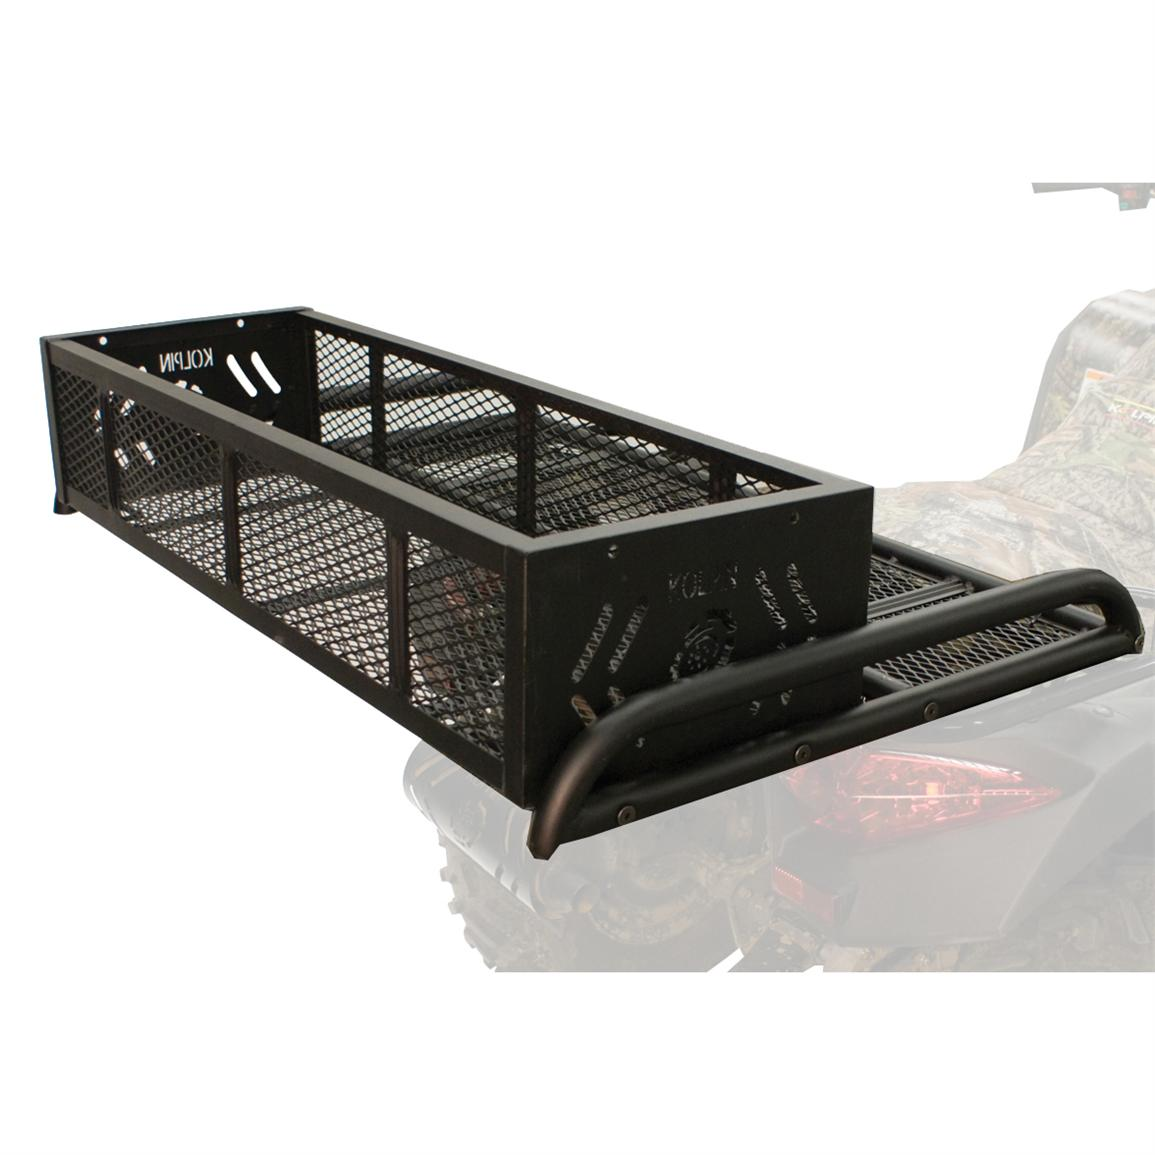 The convertible welded basket can be used with the rear rack extension in either the dropped or raised position